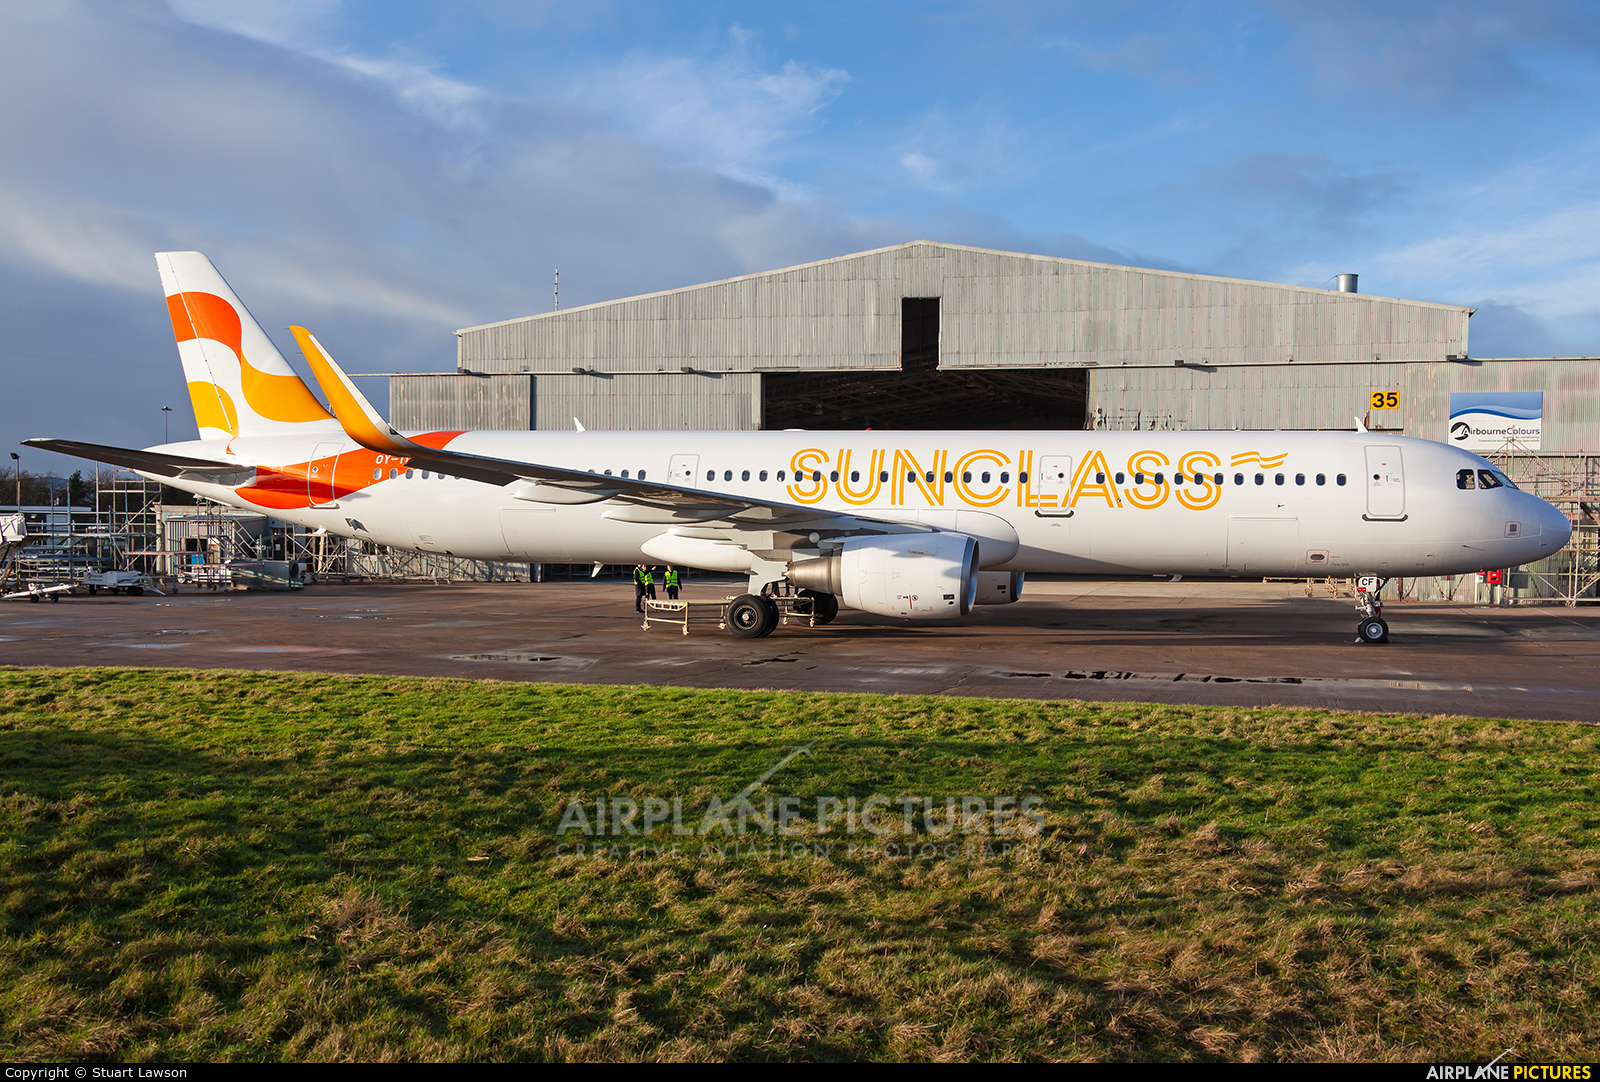 Sunclass Airlines OY-TCF aircraft at East Midlands